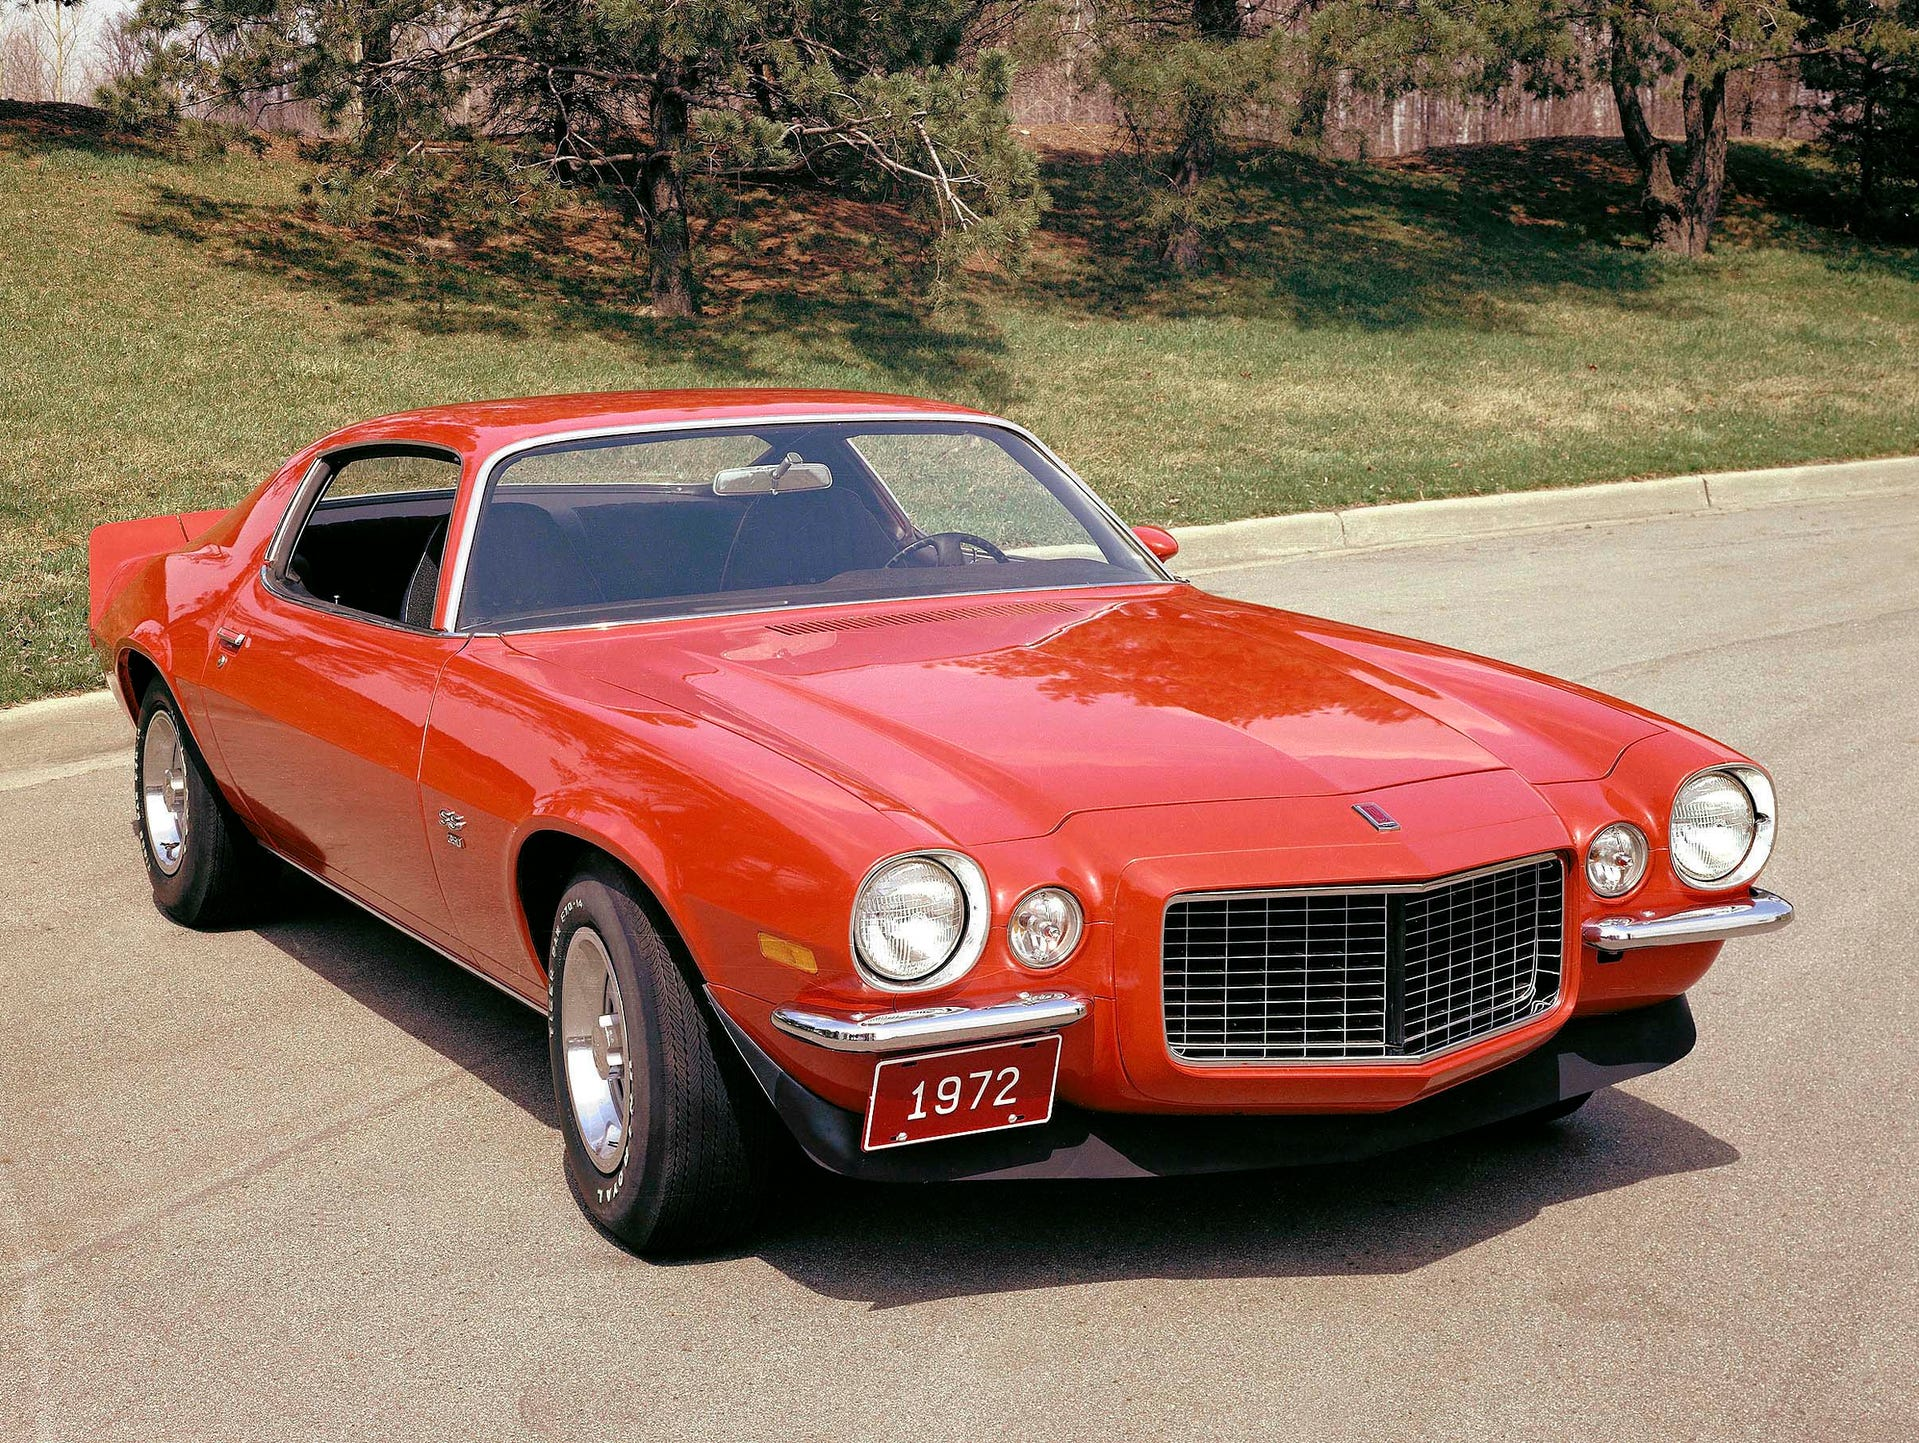 1972: Due to a strike, Camaro would only produce 68,651